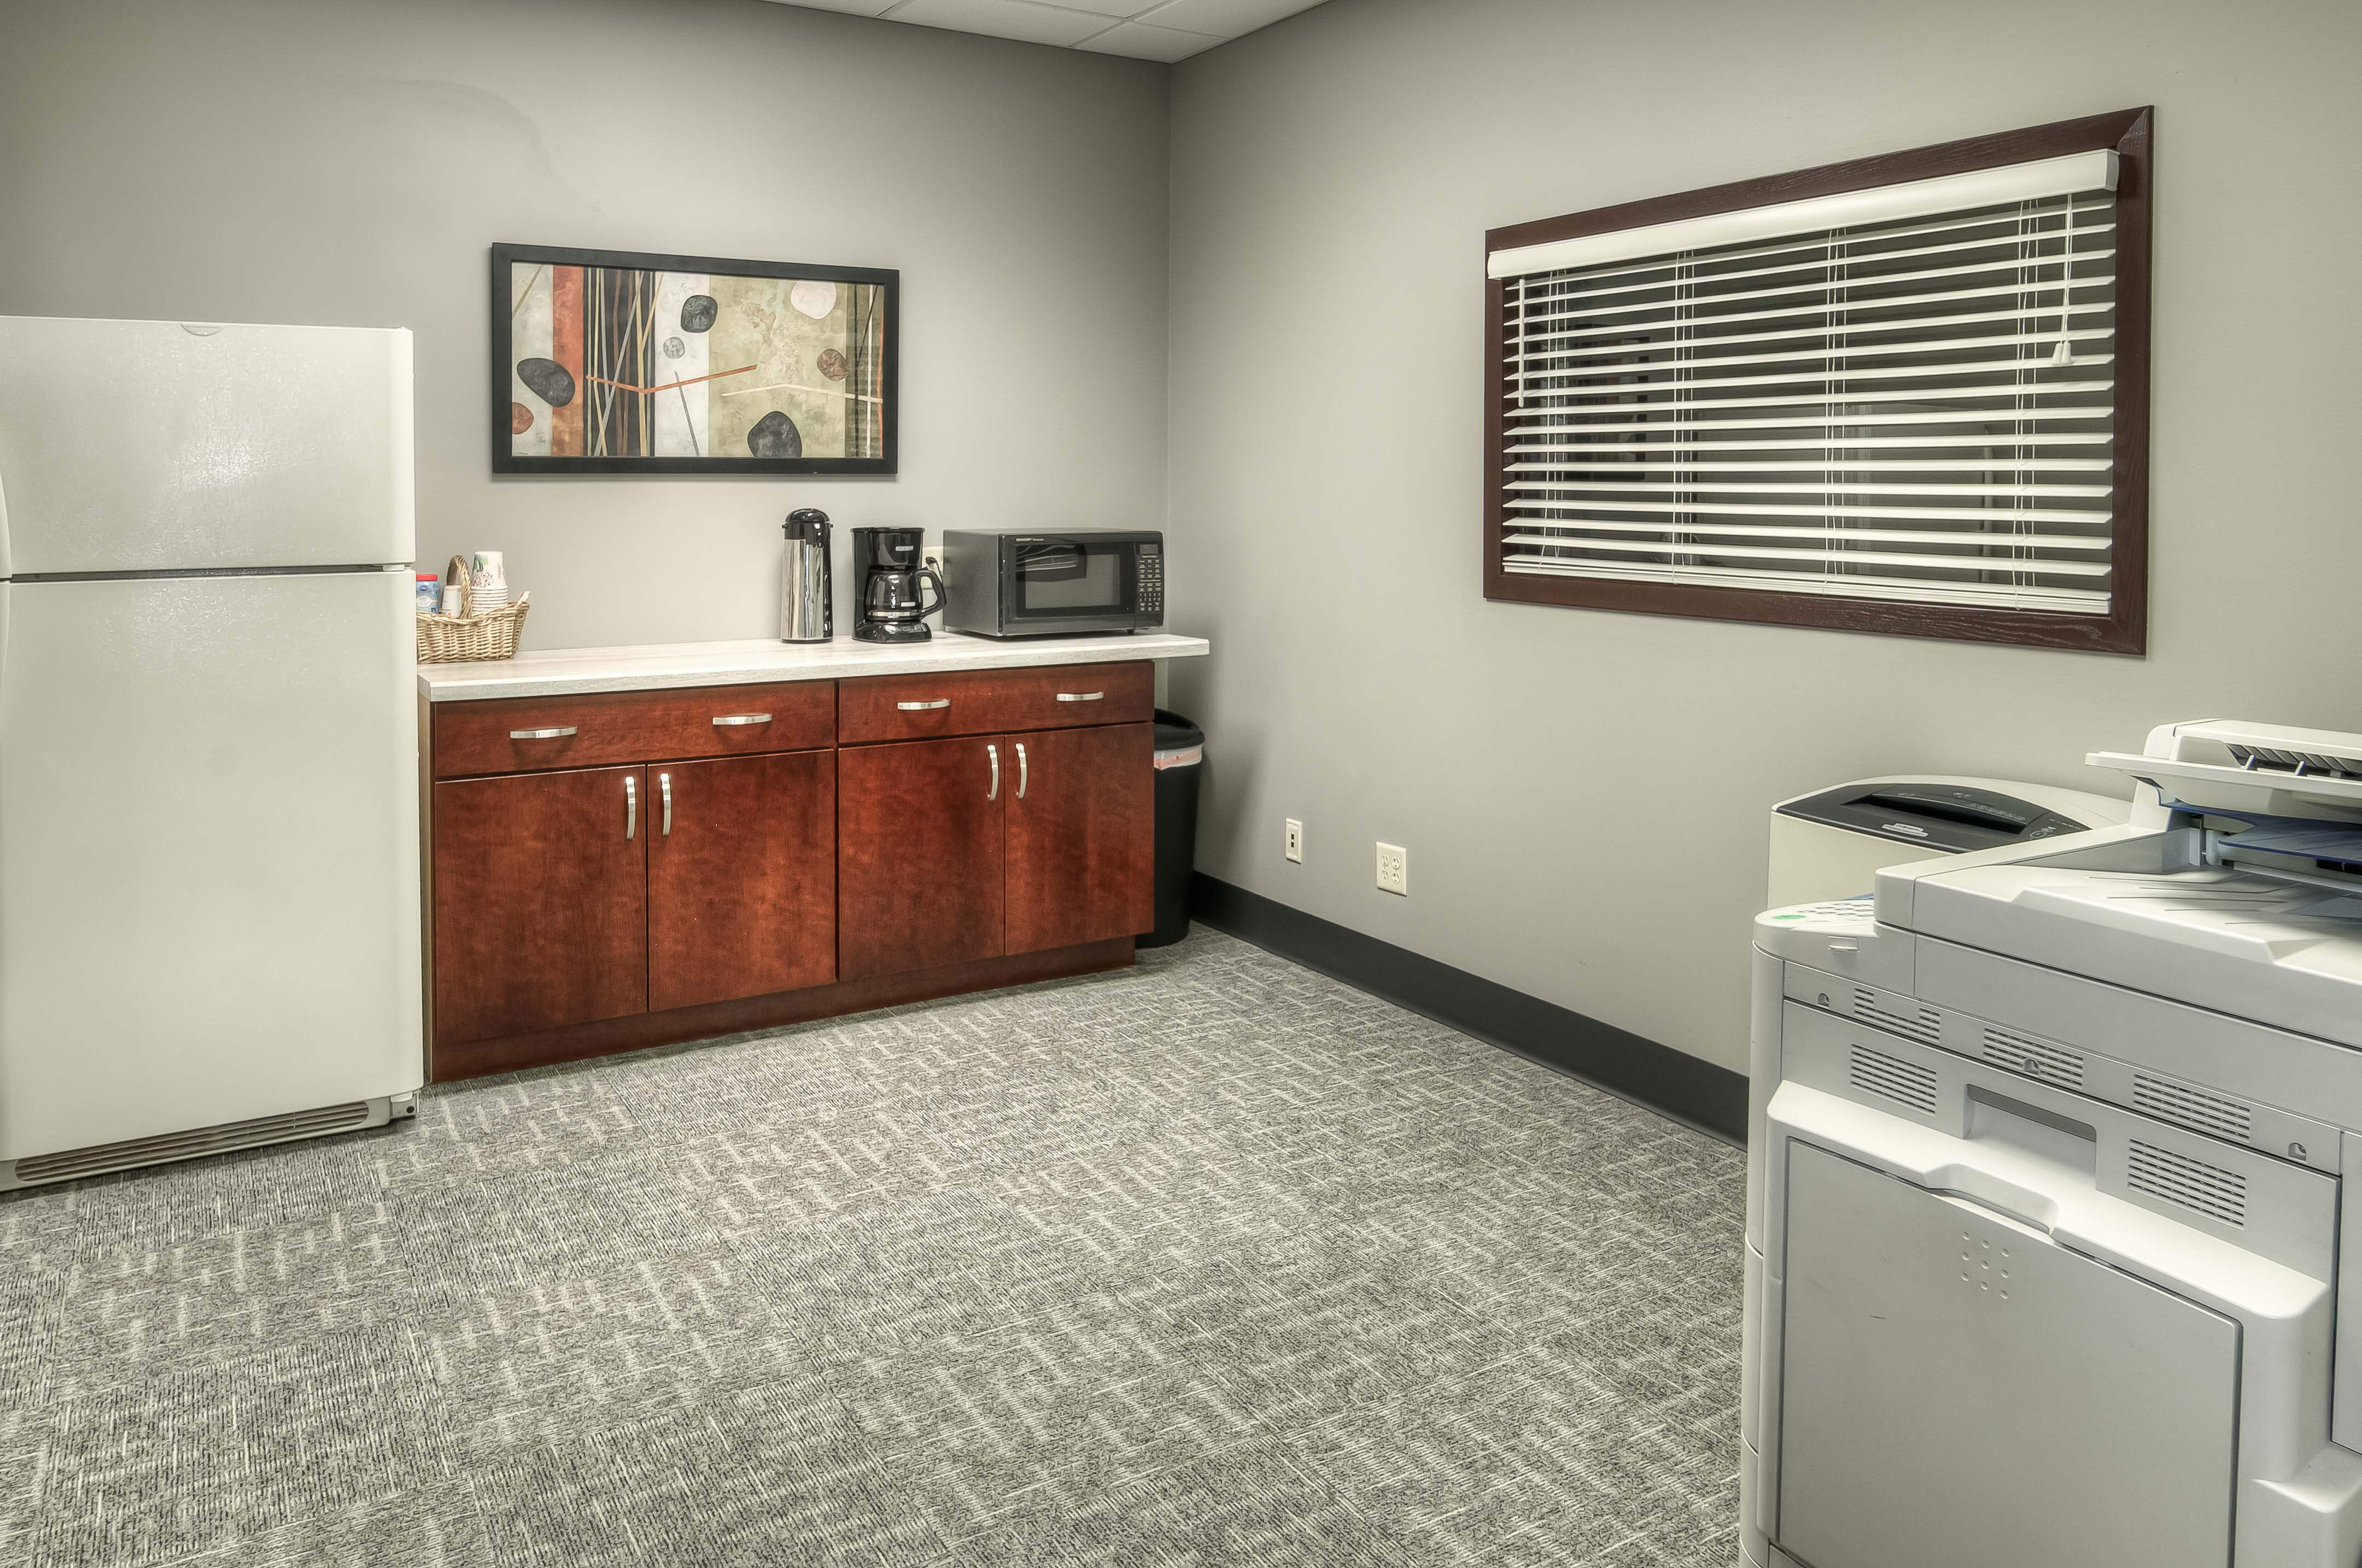 Office Space in N 129th St